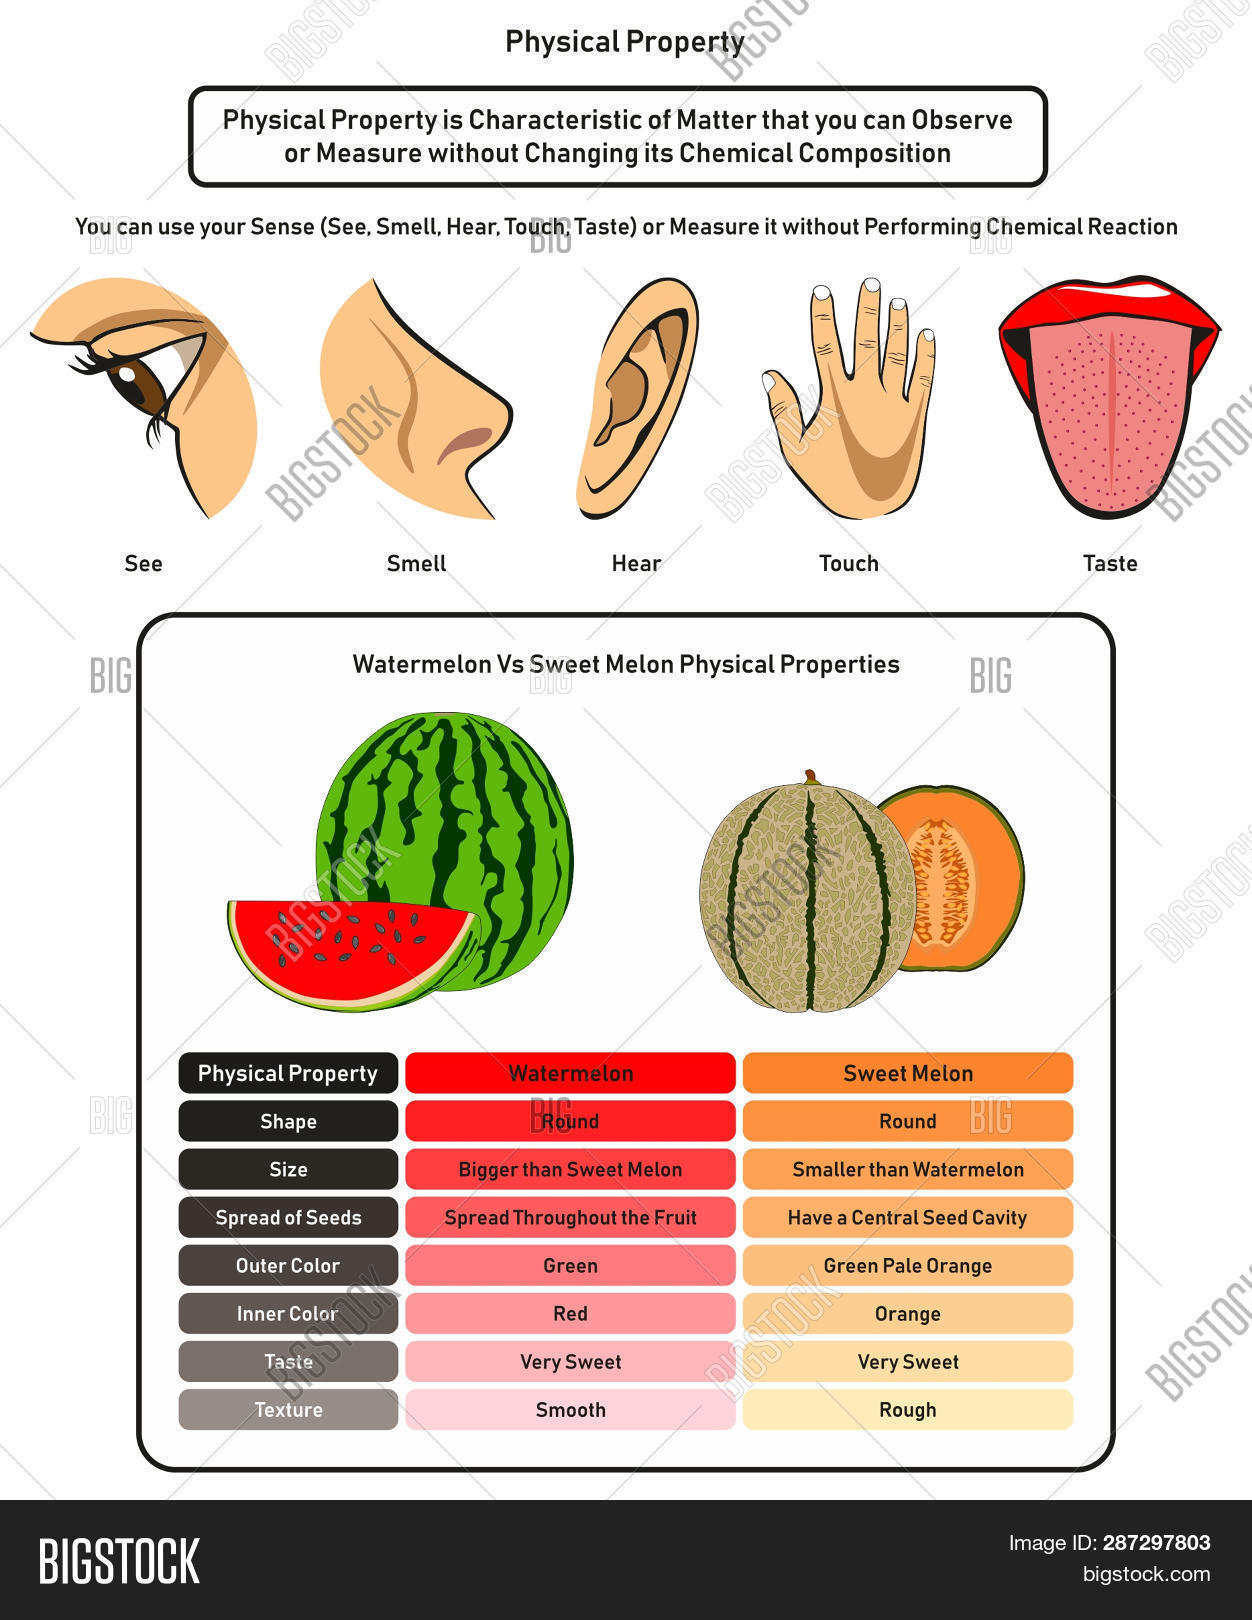 hight resolution of physical property infographic diagram showing using human five senses without changing its chemical composition and comparison